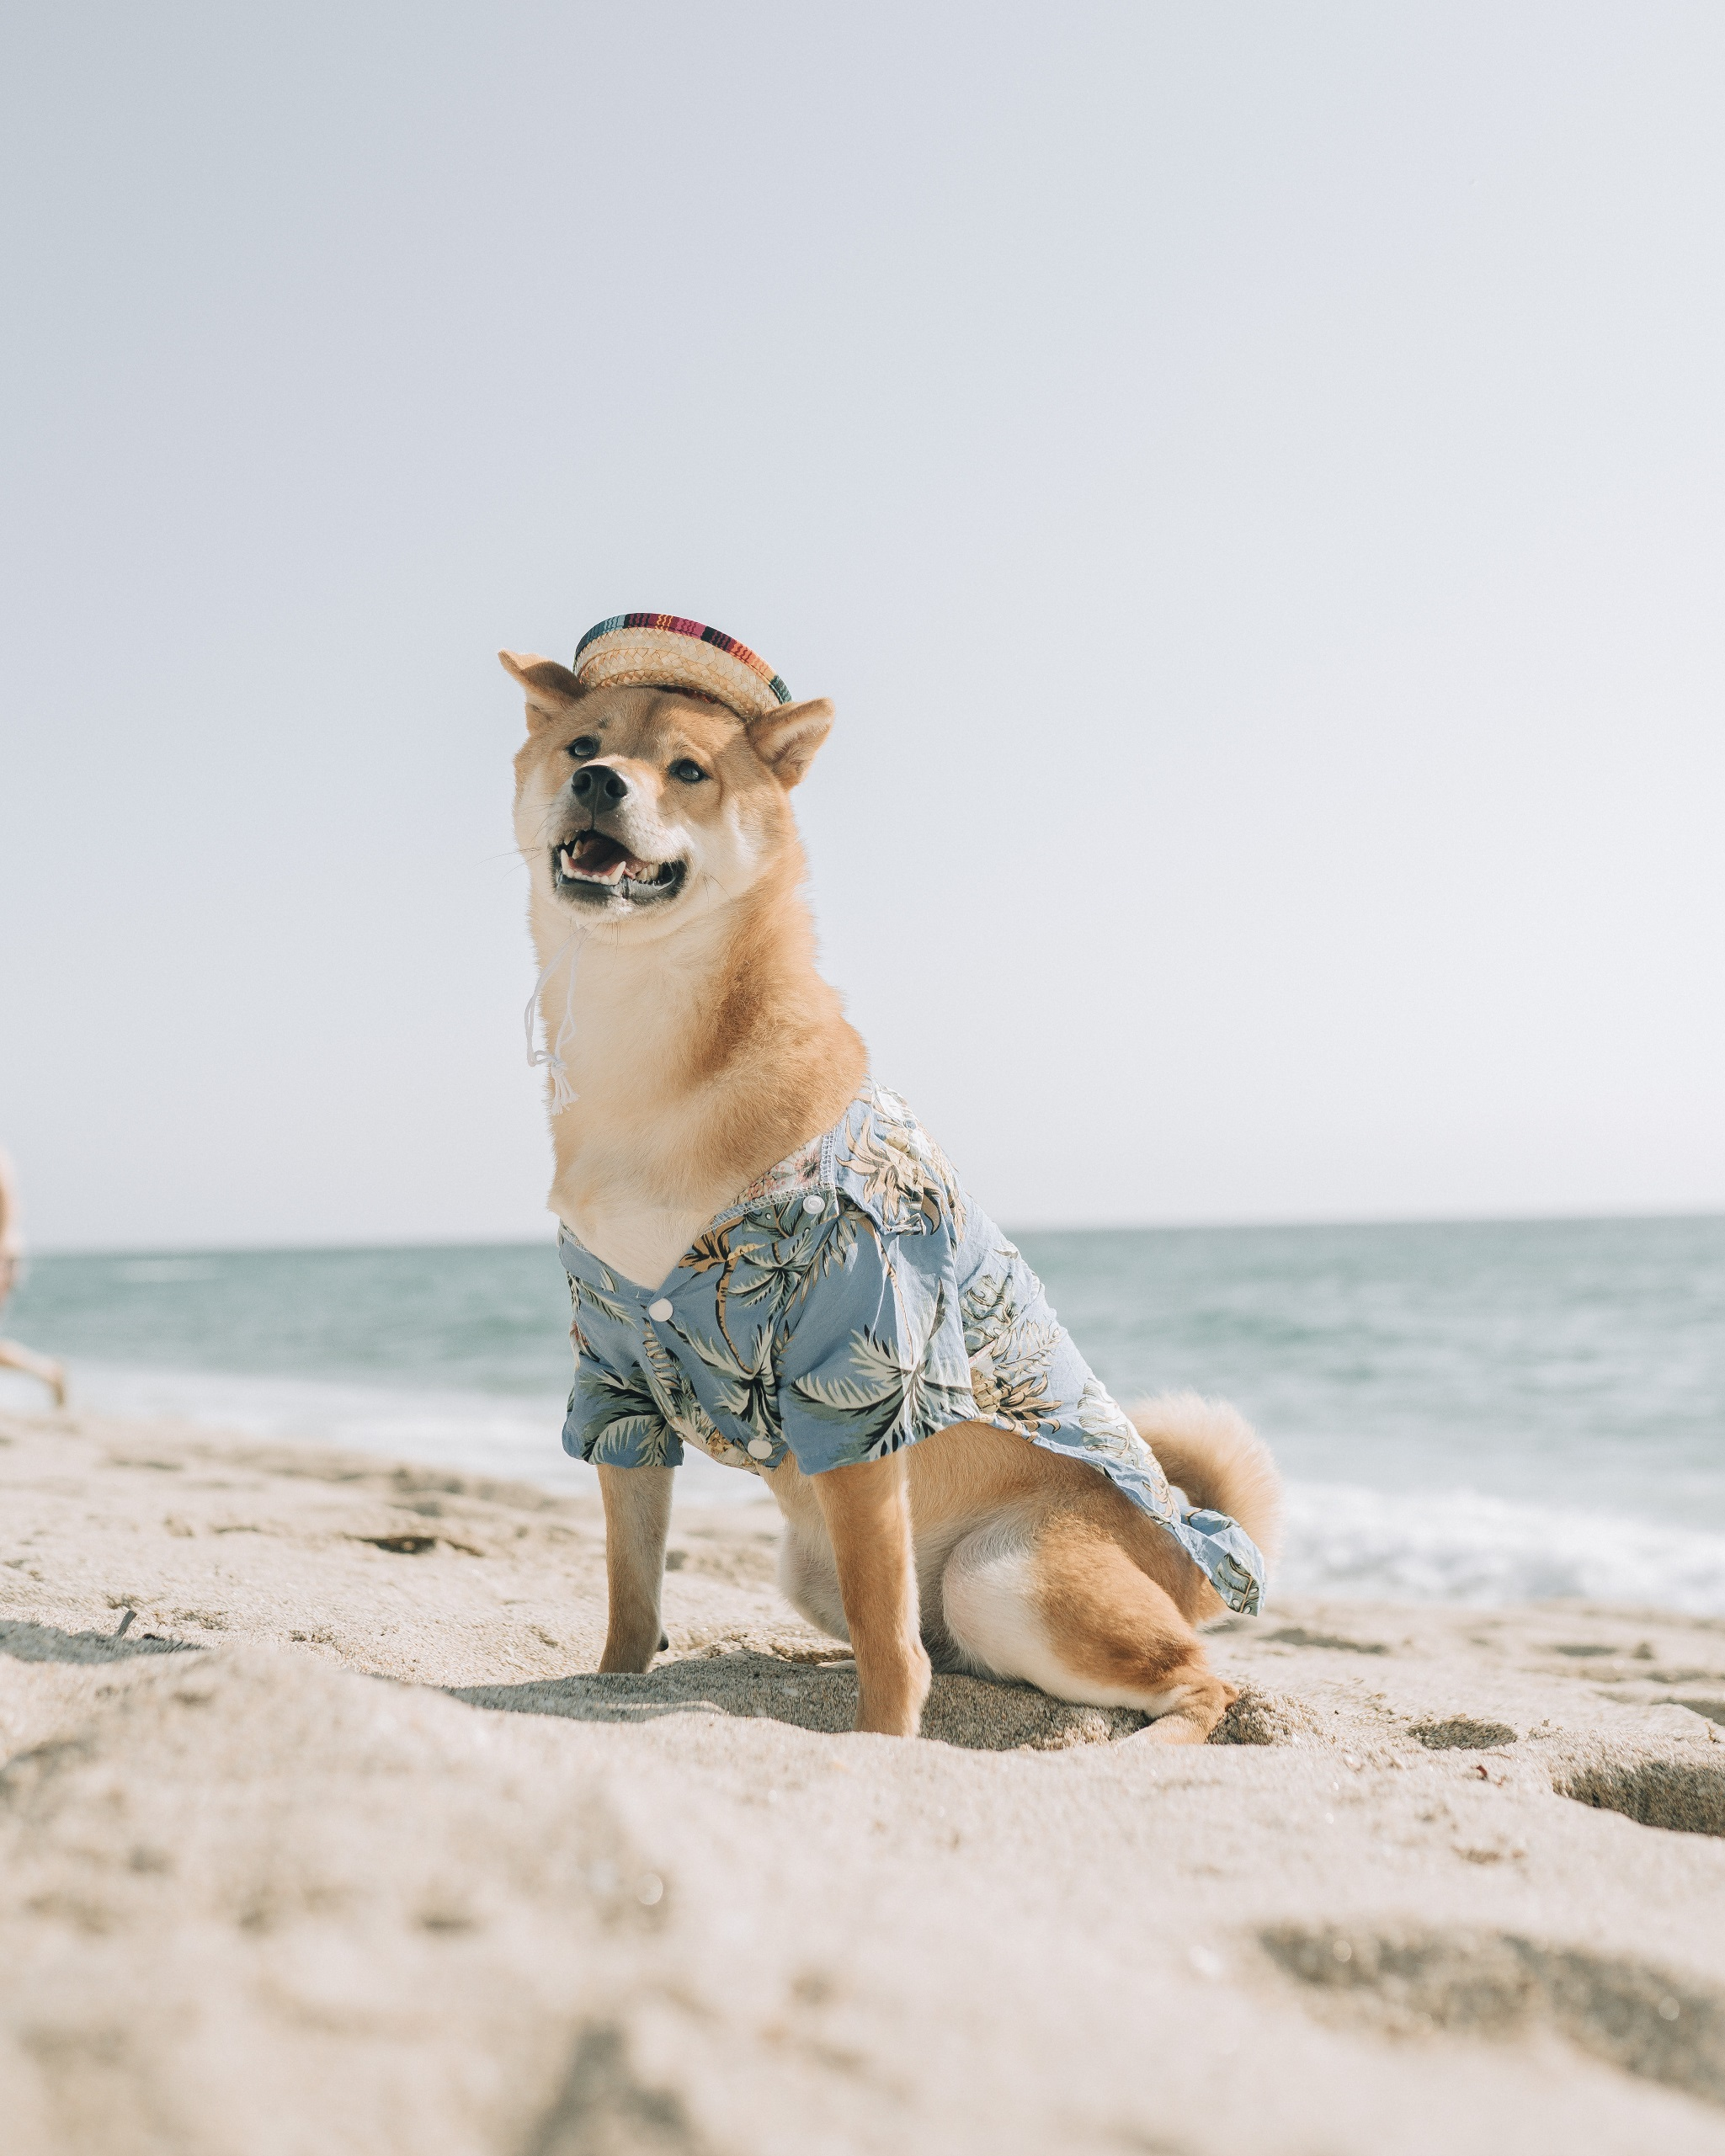 Doge at the beach, for DogeCoin